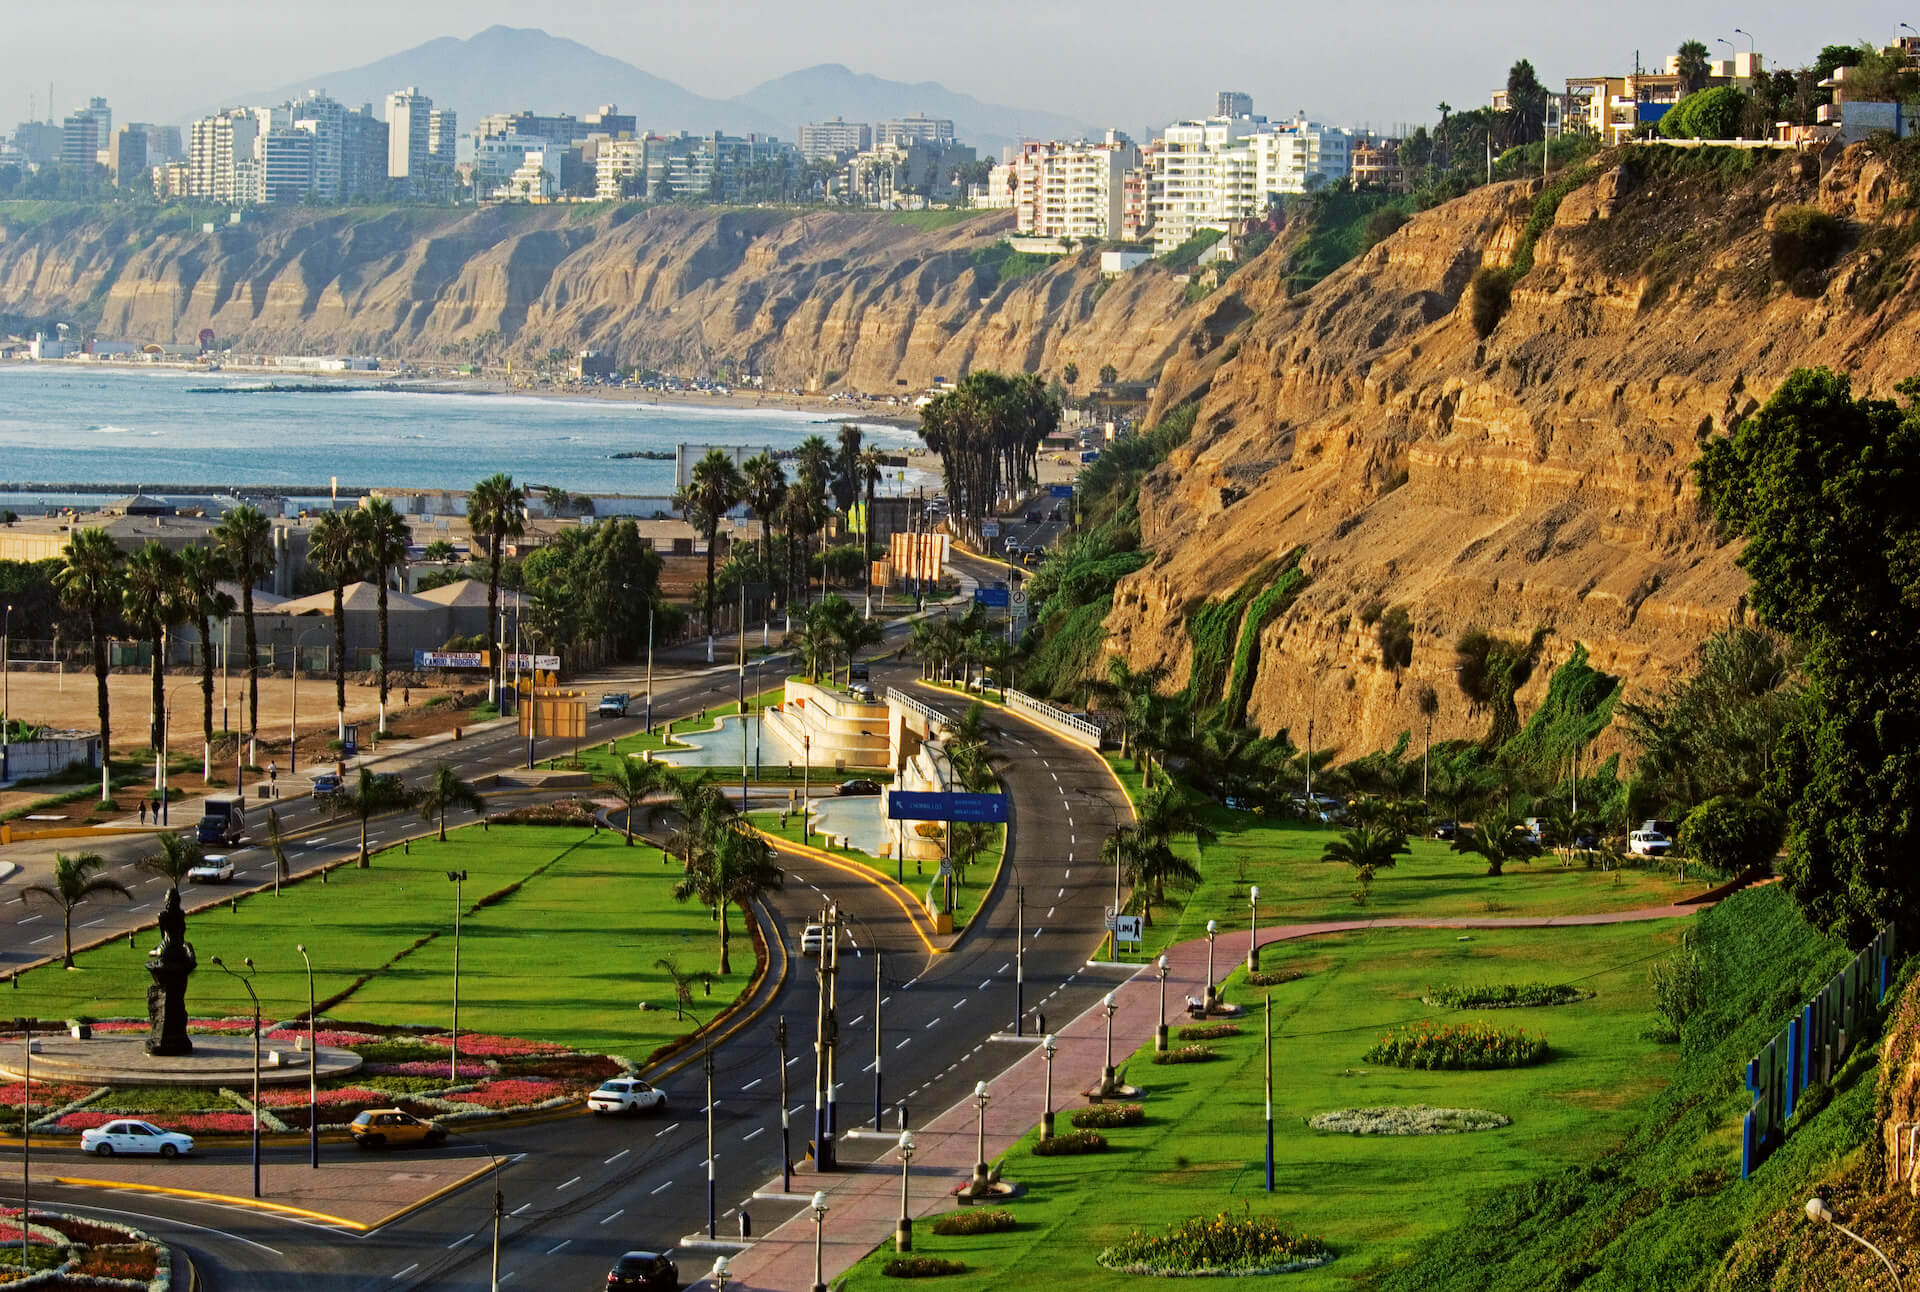 View of Costa Verde in Lima